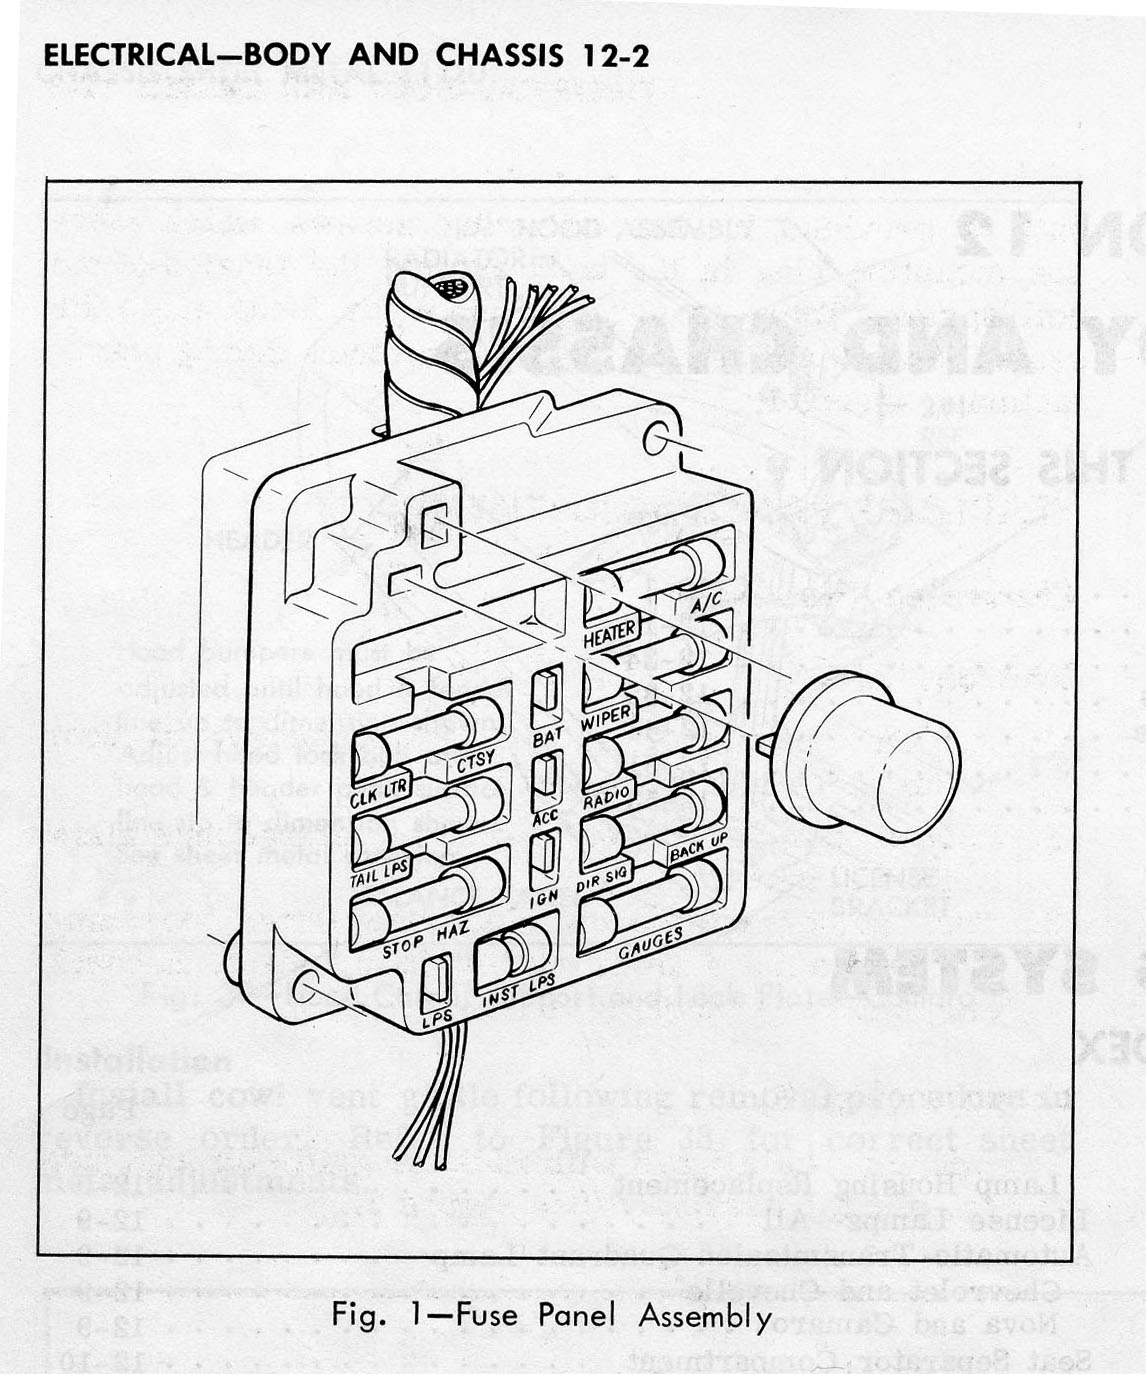 82 camaro fuse box diagram  82  get free image about